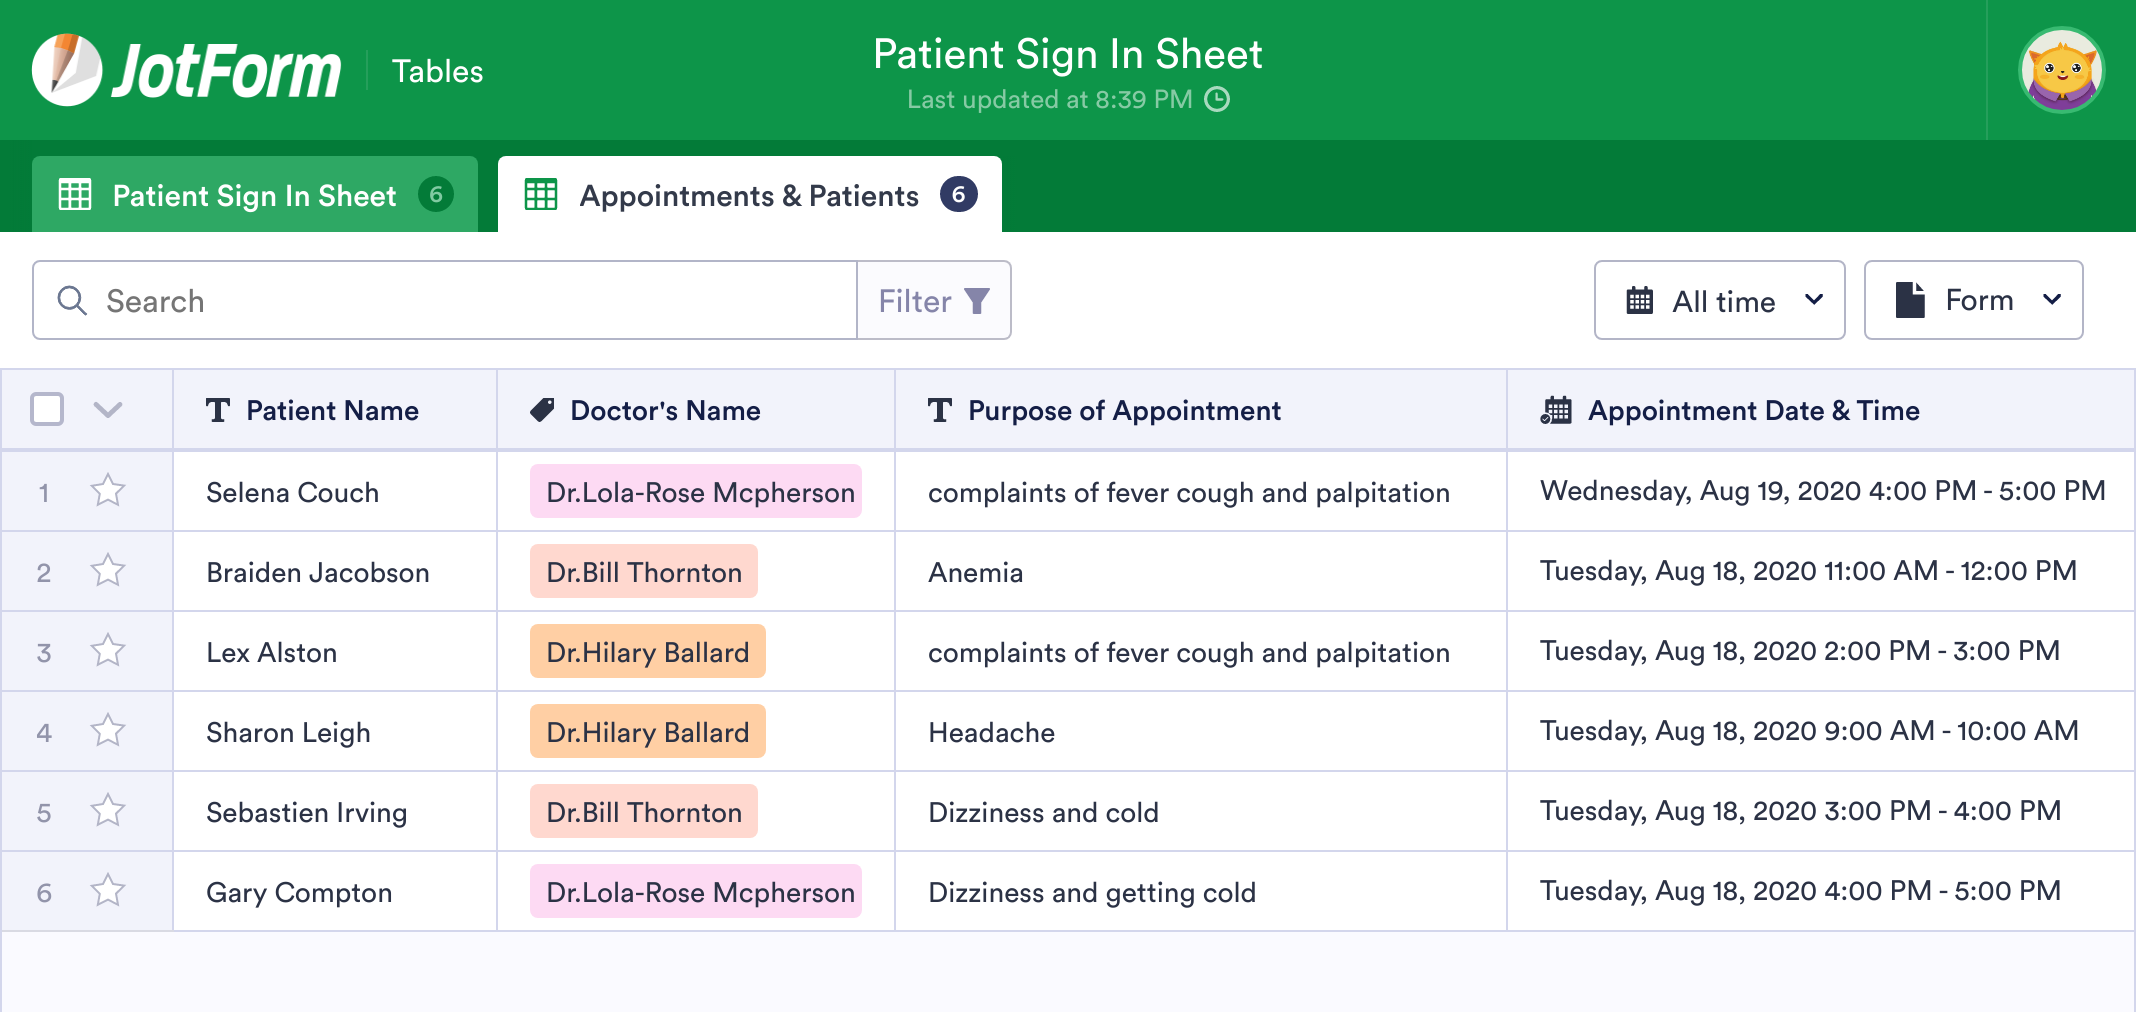 Patient Sign In Sheet